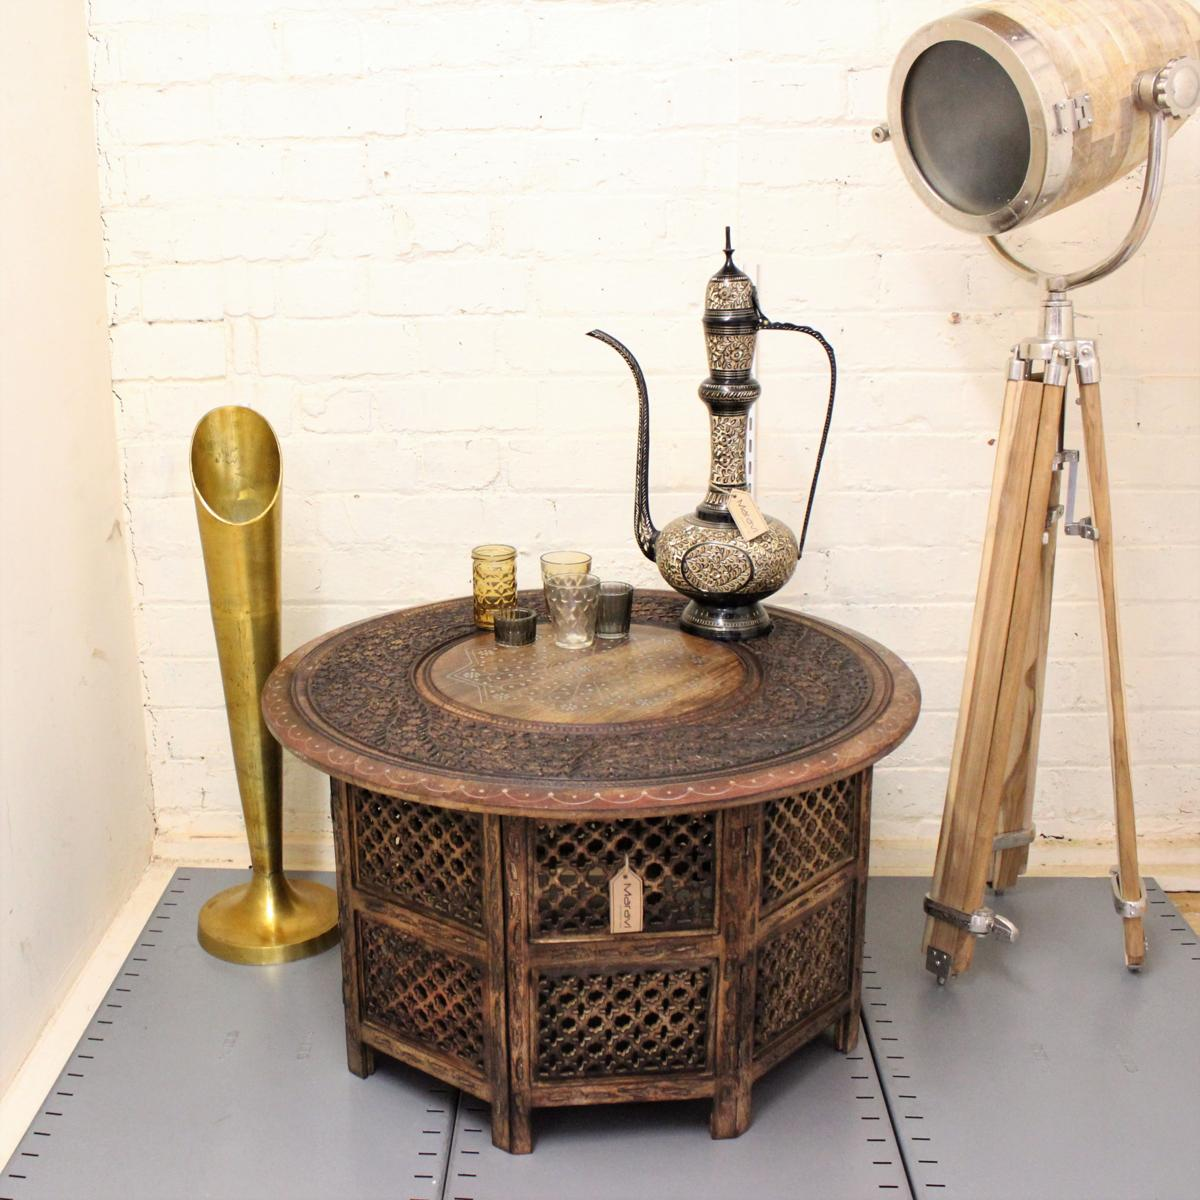 Round Coffee Tables On Ebay: Matanga Large Round Coffee Table Brown Solid Wooden Indian